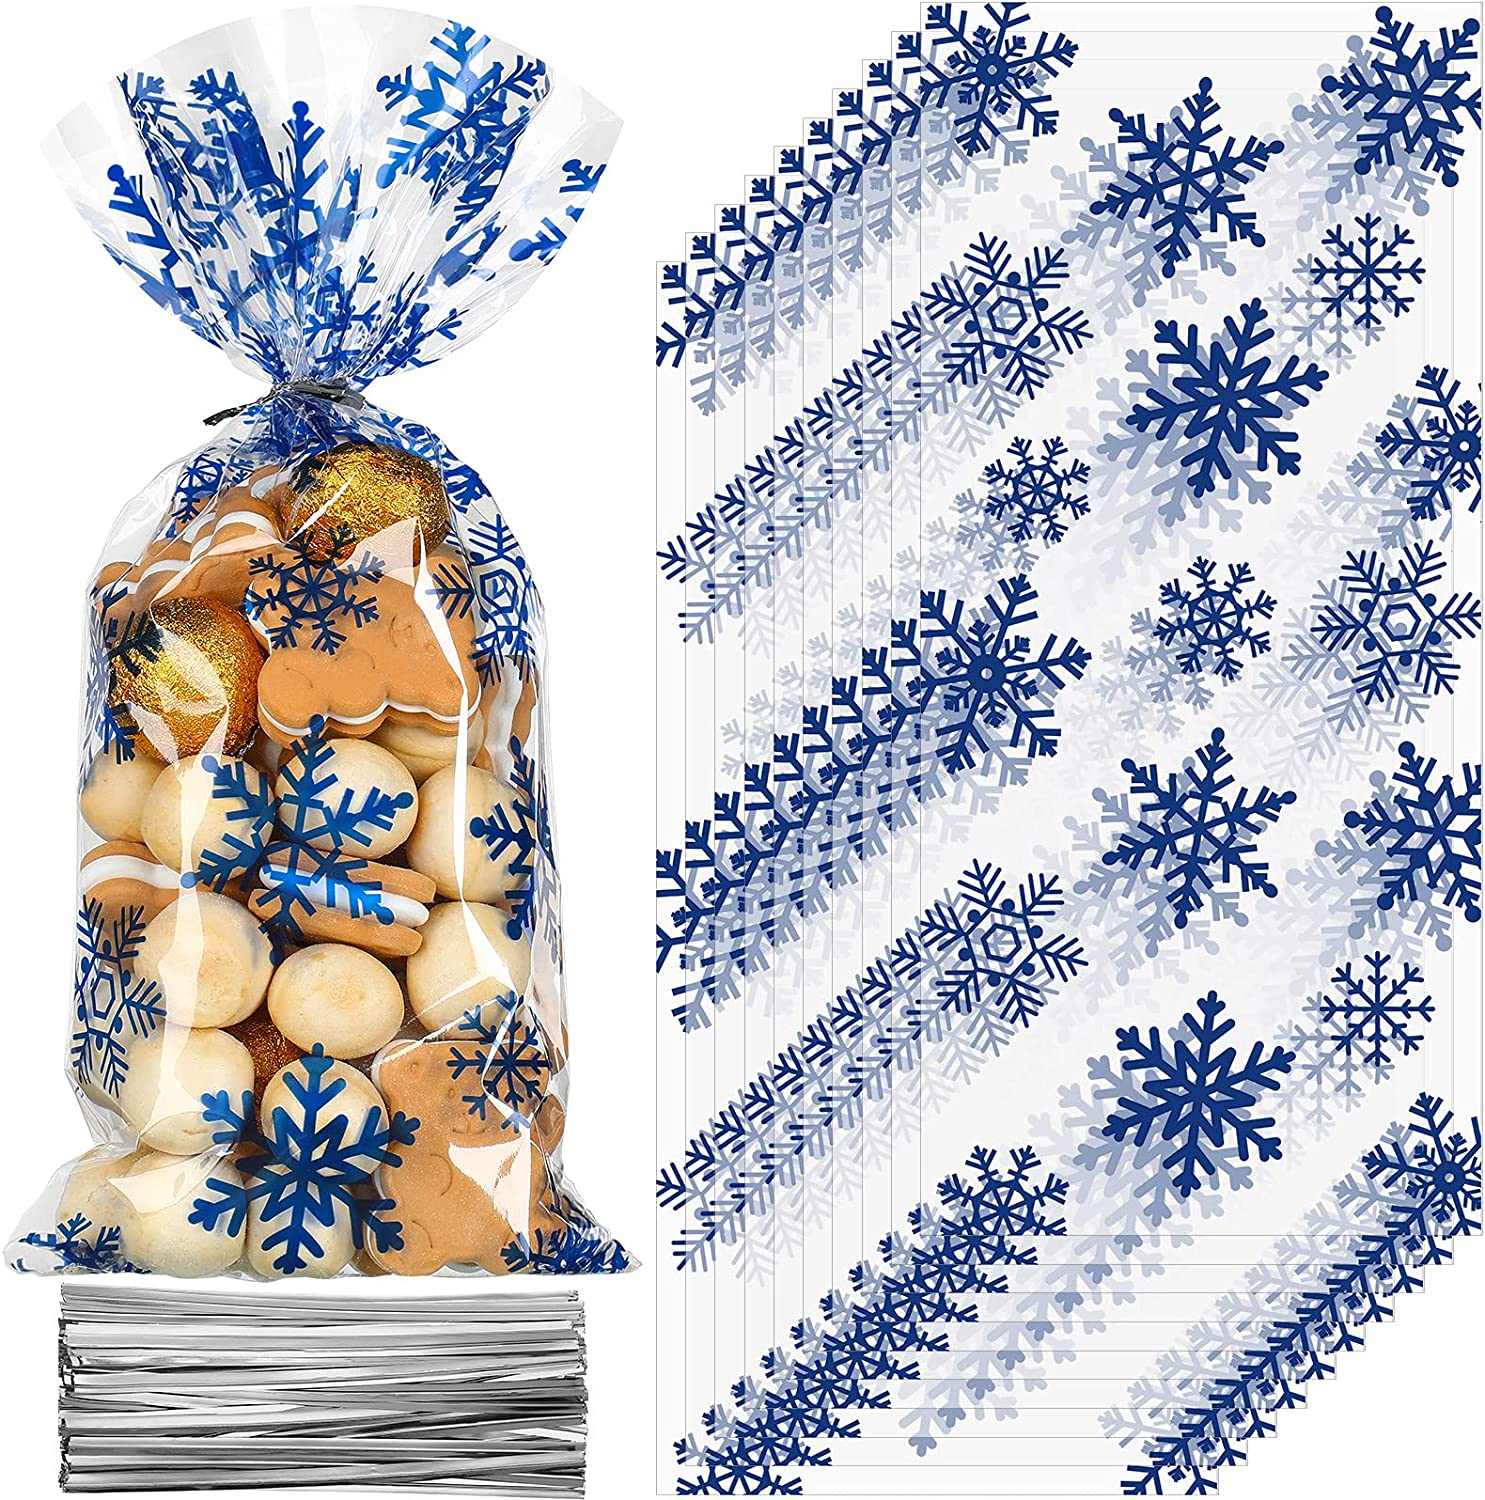 100 Pieces Christmas Cellophane Treat Bags, Plastic Christmas Cello Bags with Twist Ties for Candy, Cookie, Goodies, Gift Wrap, Xmas Party Favor Supplies (Snowflake Pattern)